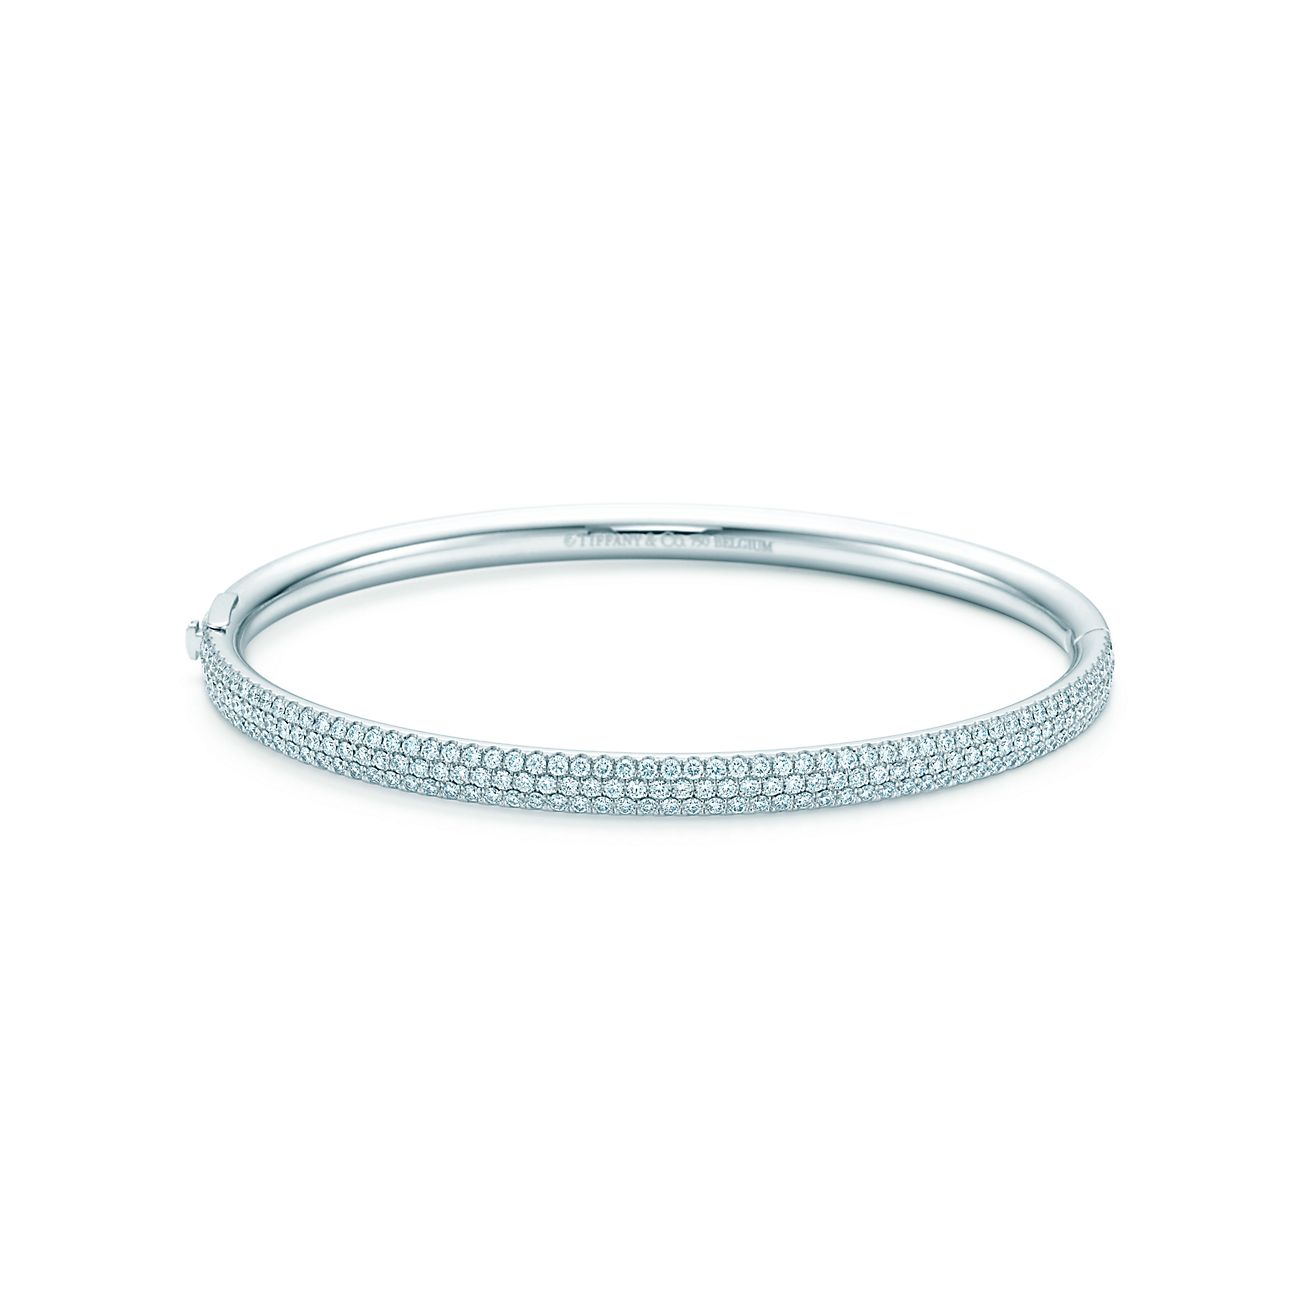 Tiffany Metro threerow hinged bangle in 18k white gold with